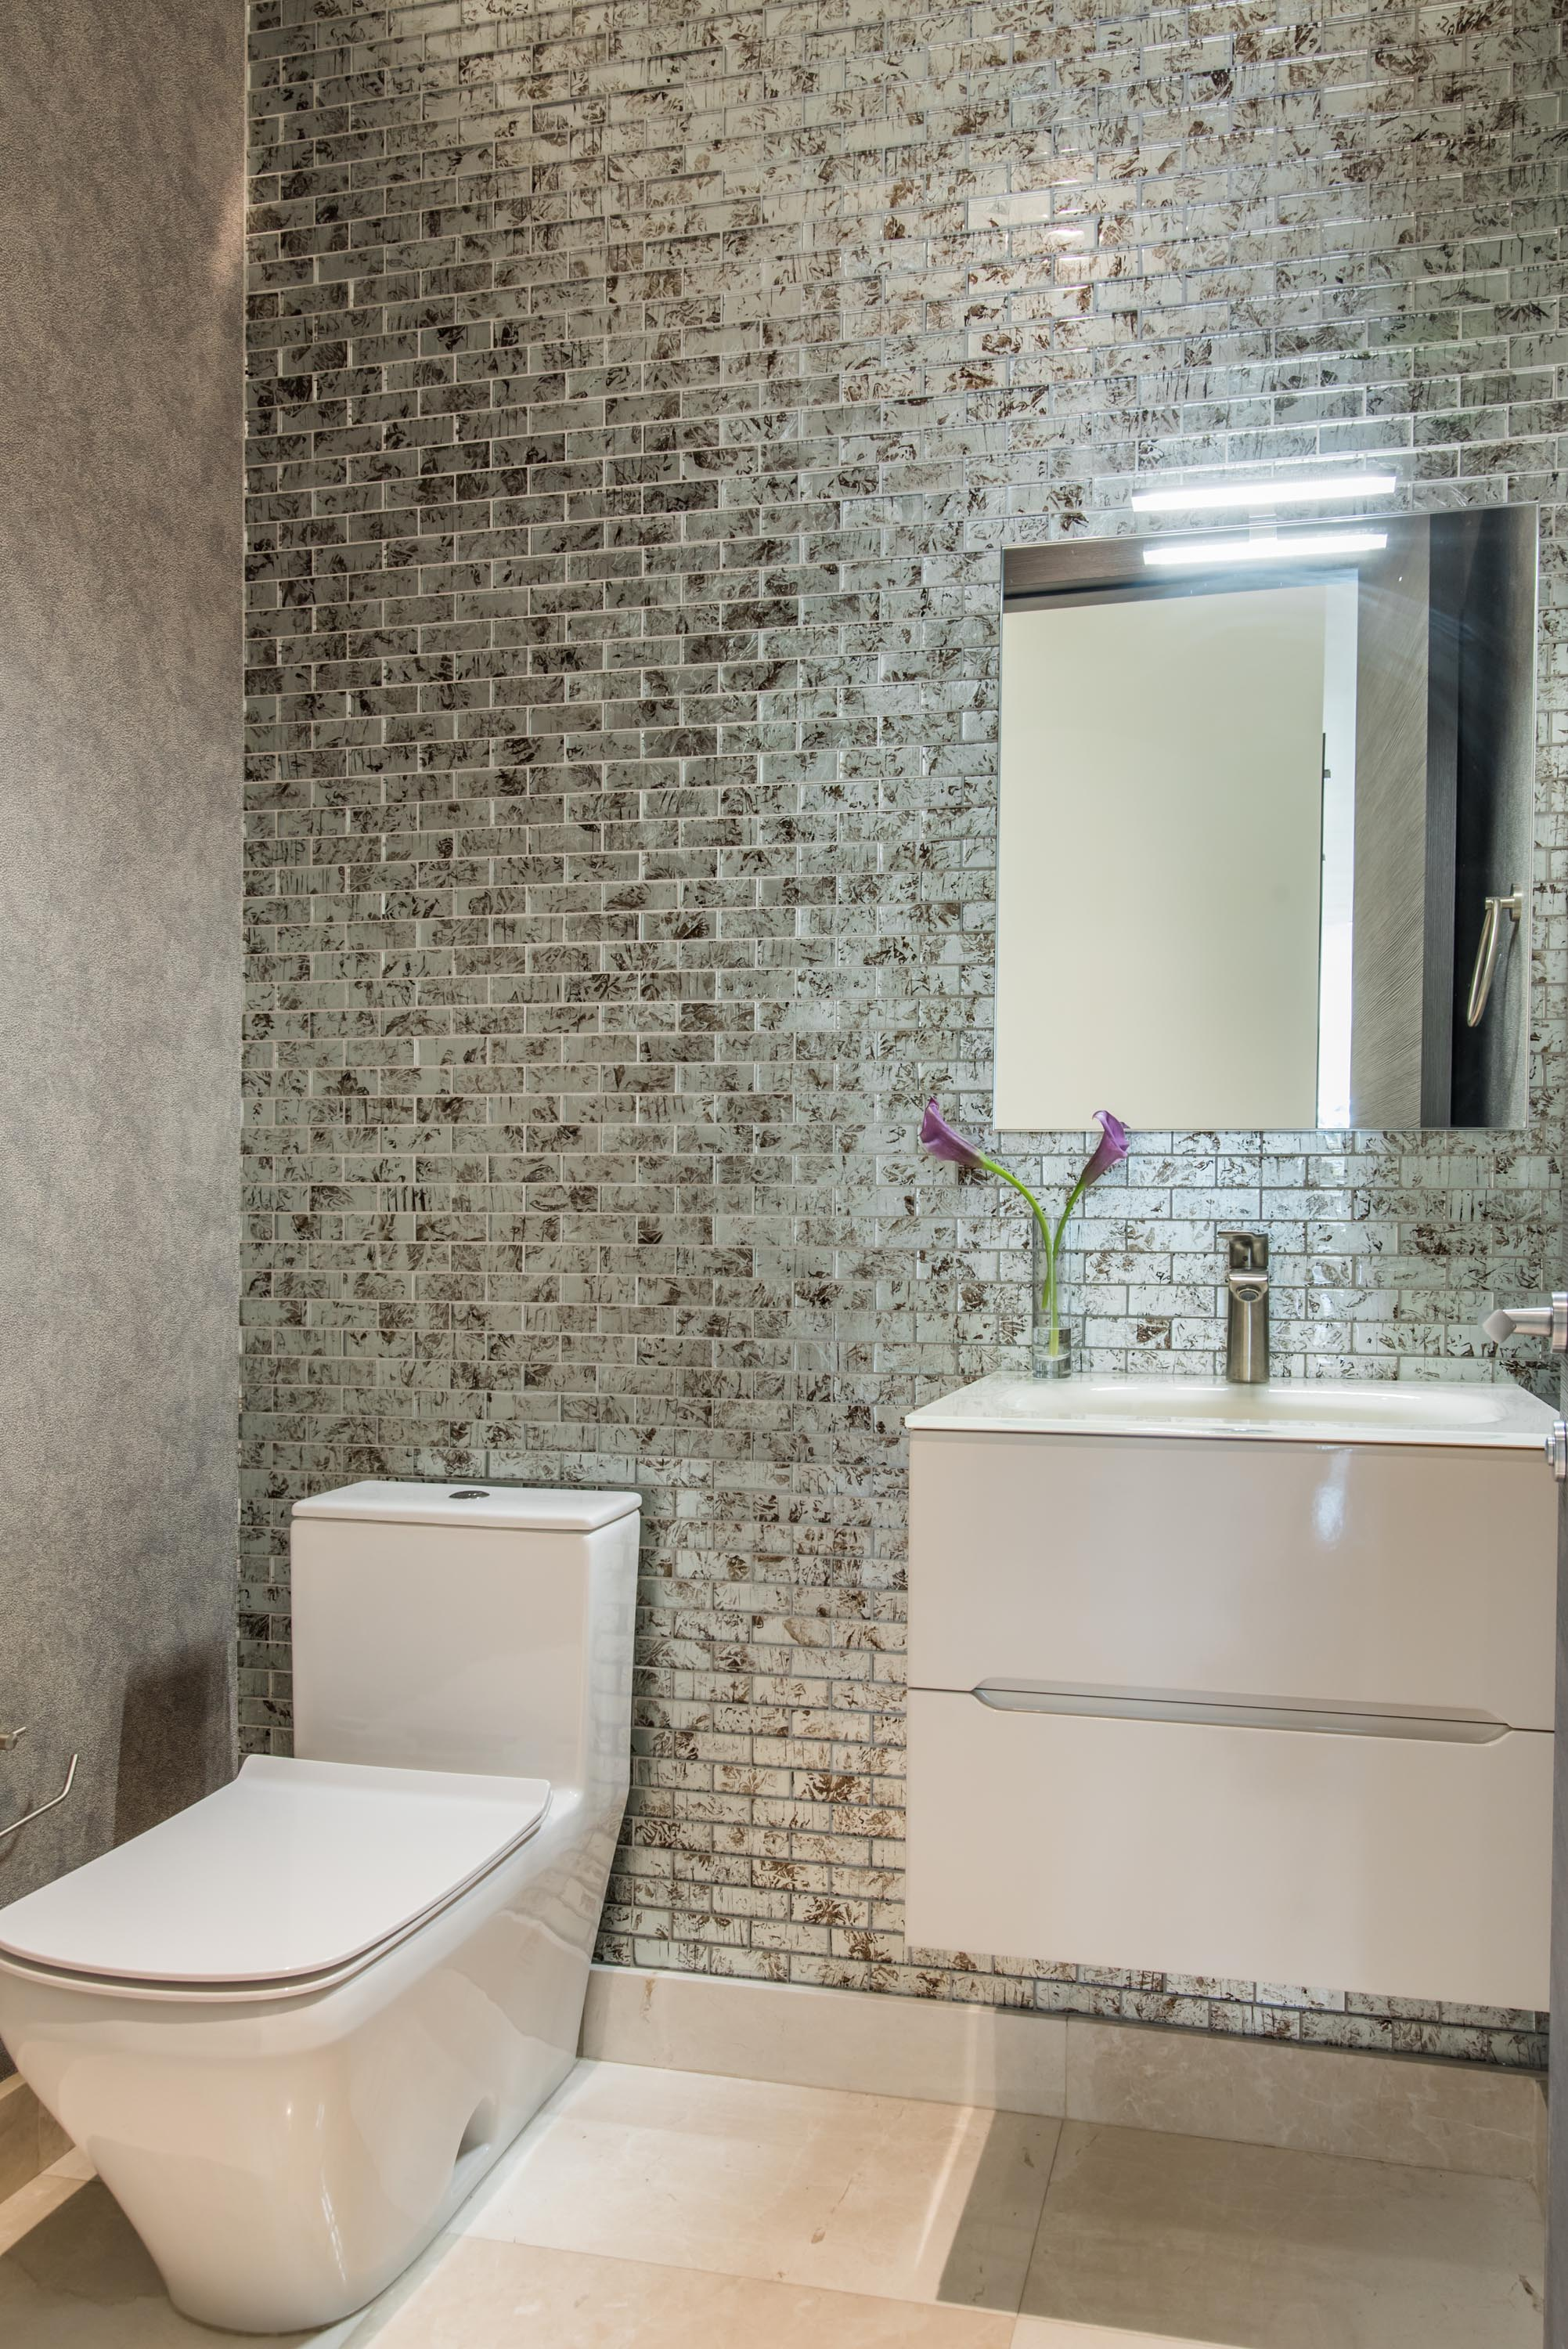 Comfort room with toilet bowl, accent glass tile wall and modern wallpaper